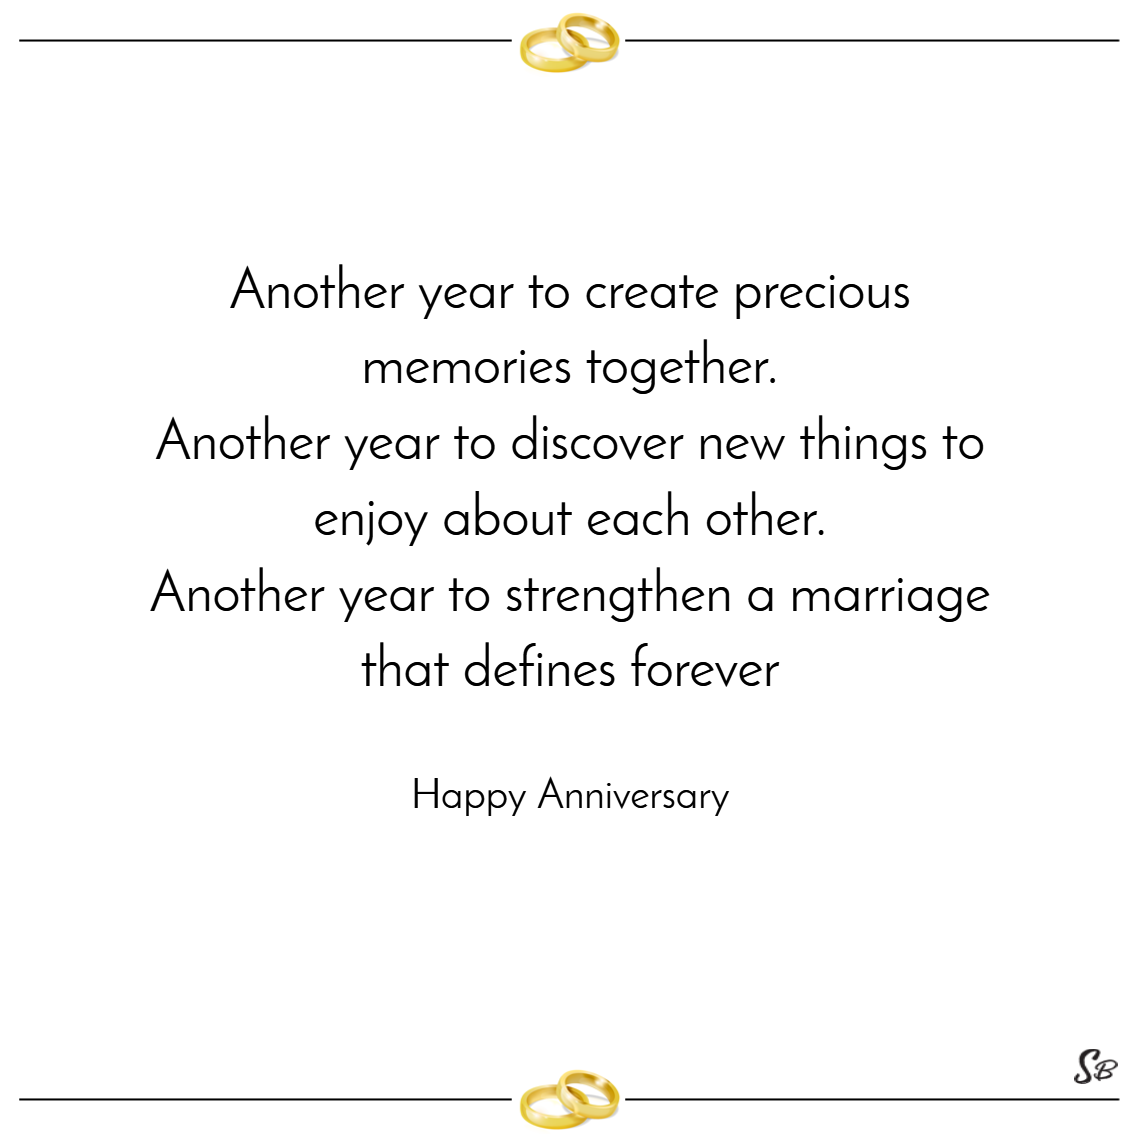 Another year to create precious memories together. another year to discover new things to enjoy about each other. another year to strengthen a marriage that defines forever. – happy anniversary